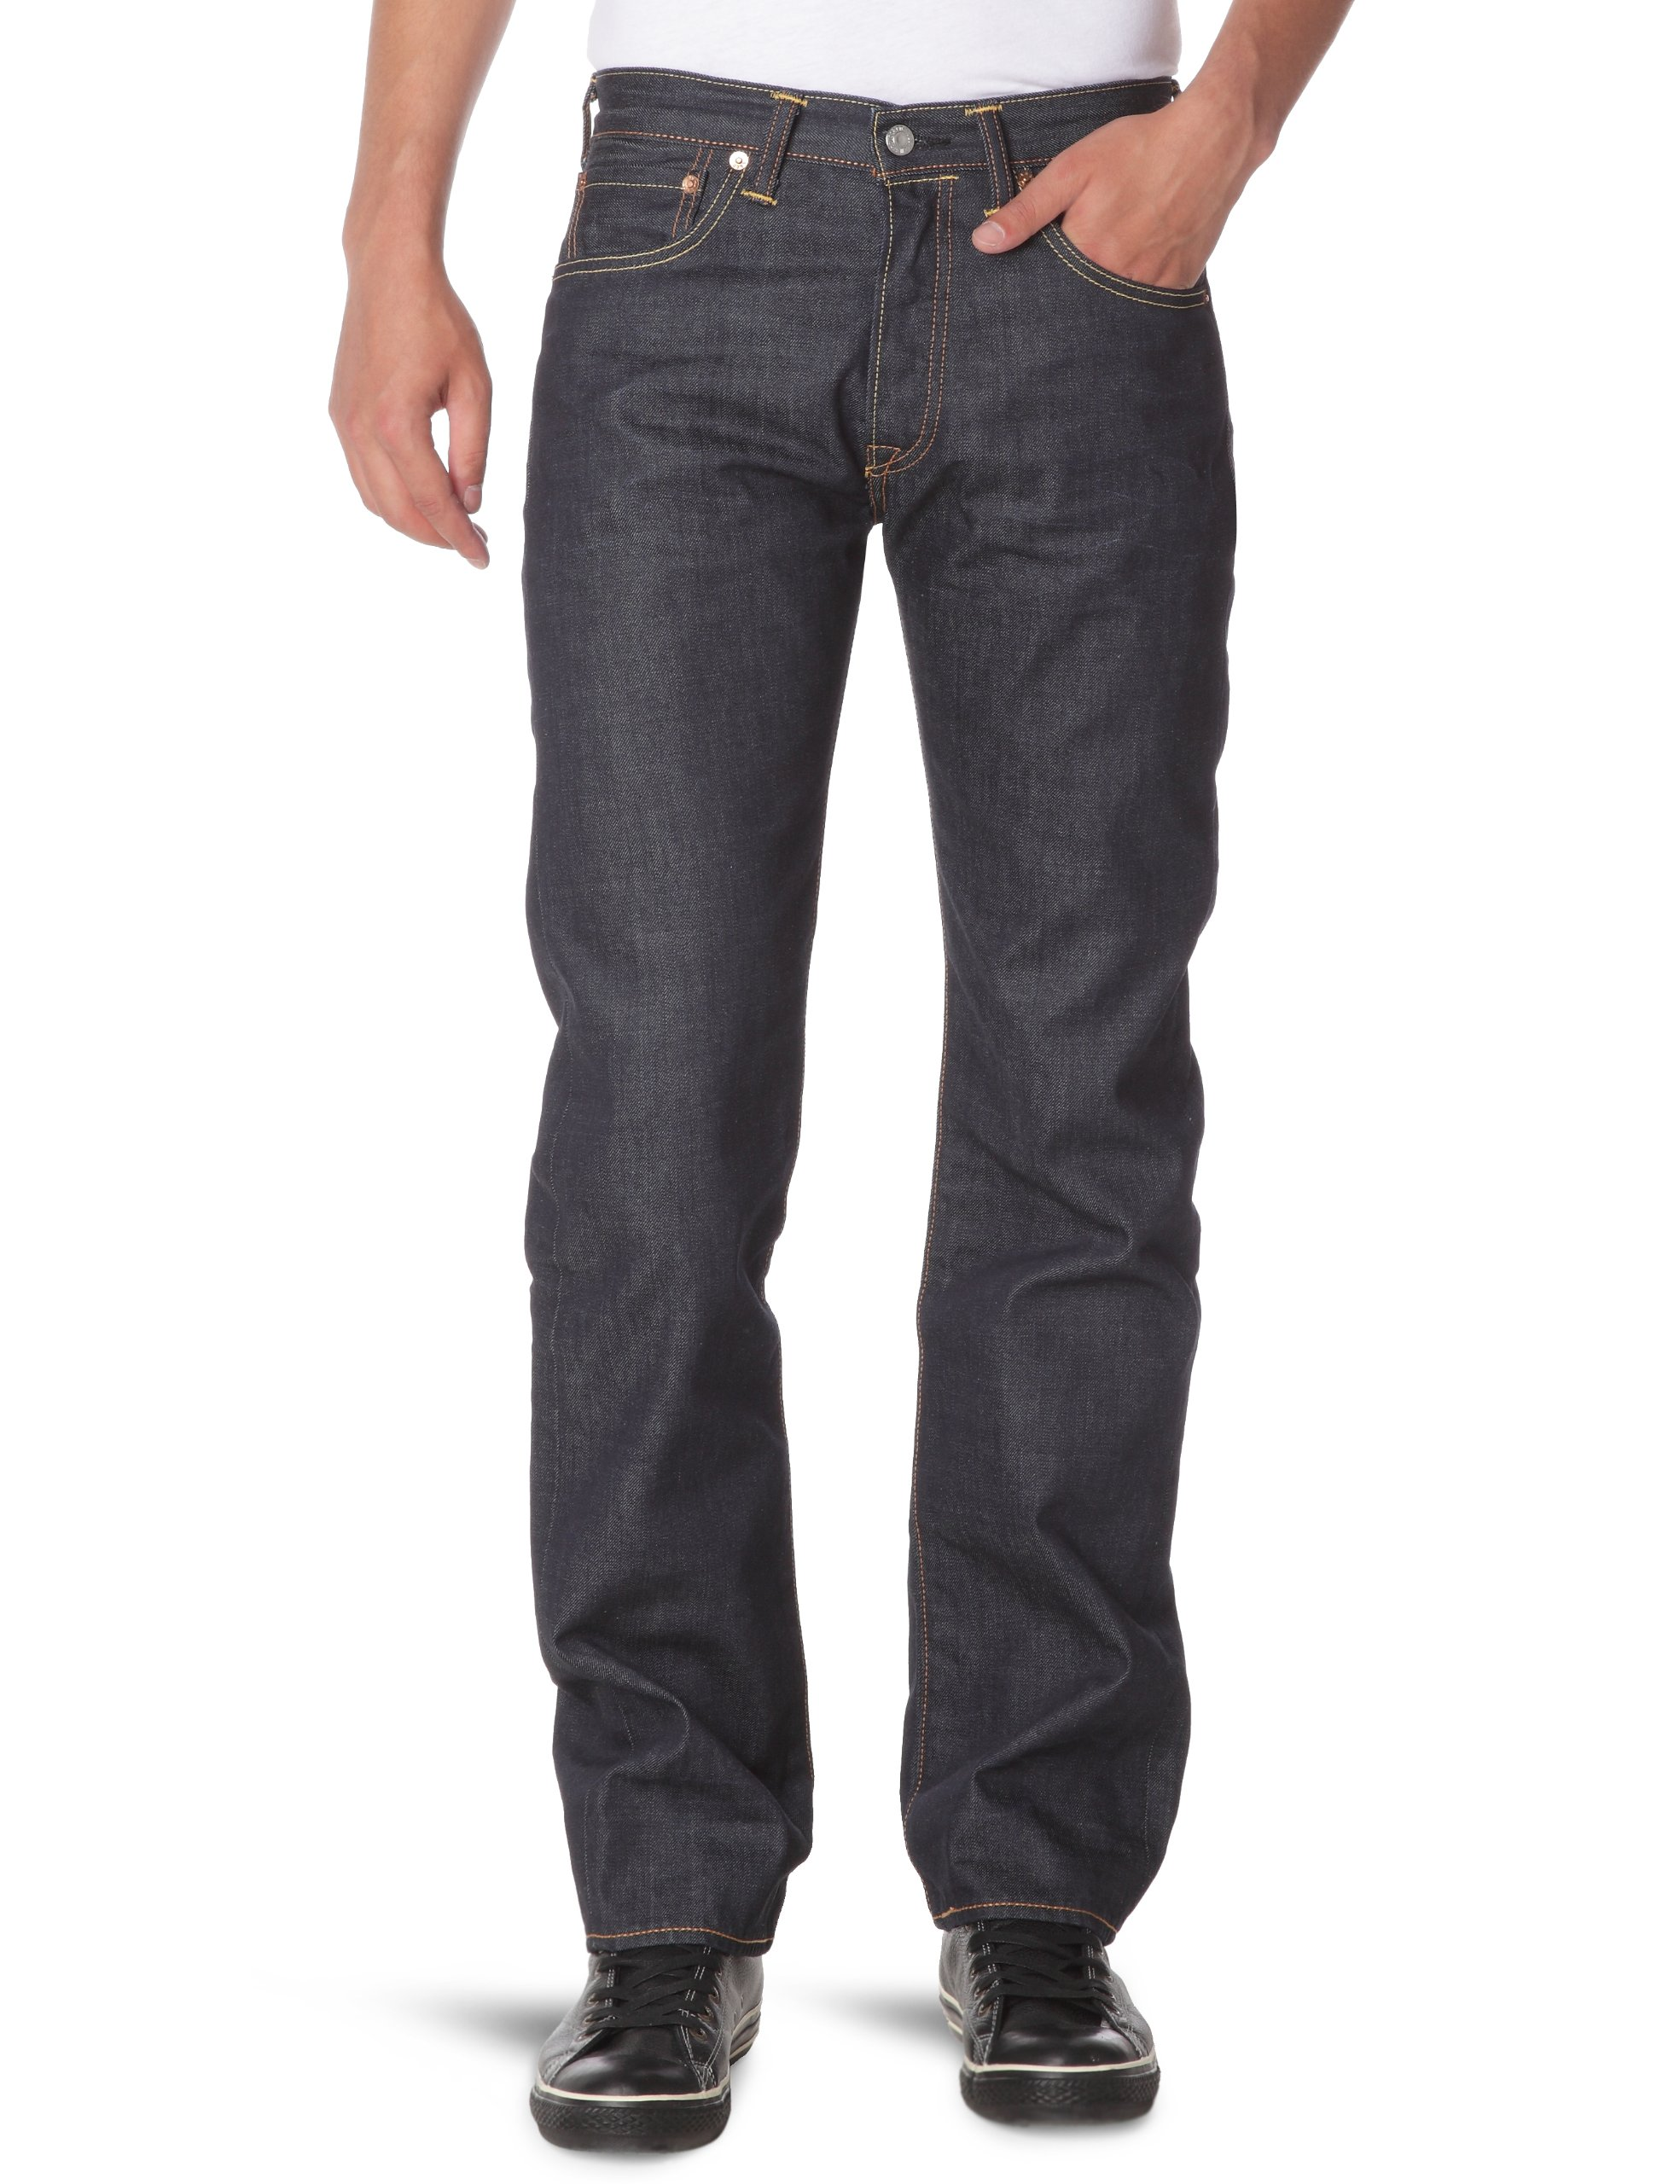 Levi's 501 Original Fit Jeans Uomo